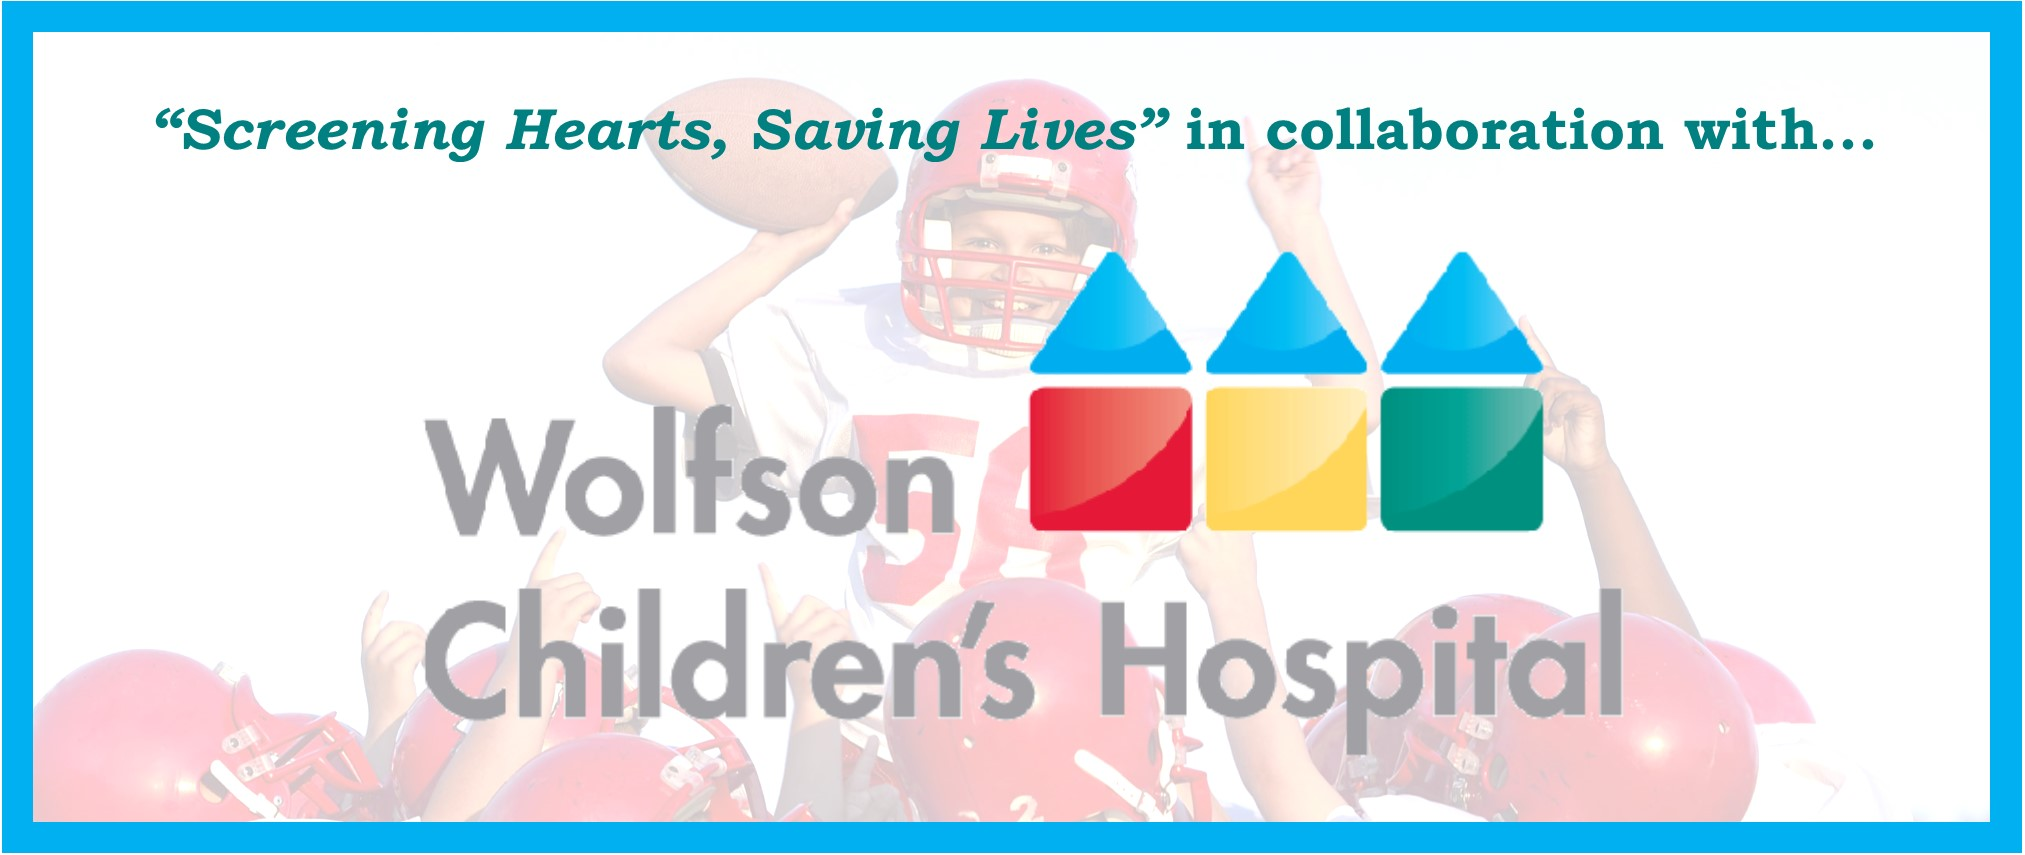 Wolfson Childrens Hospital